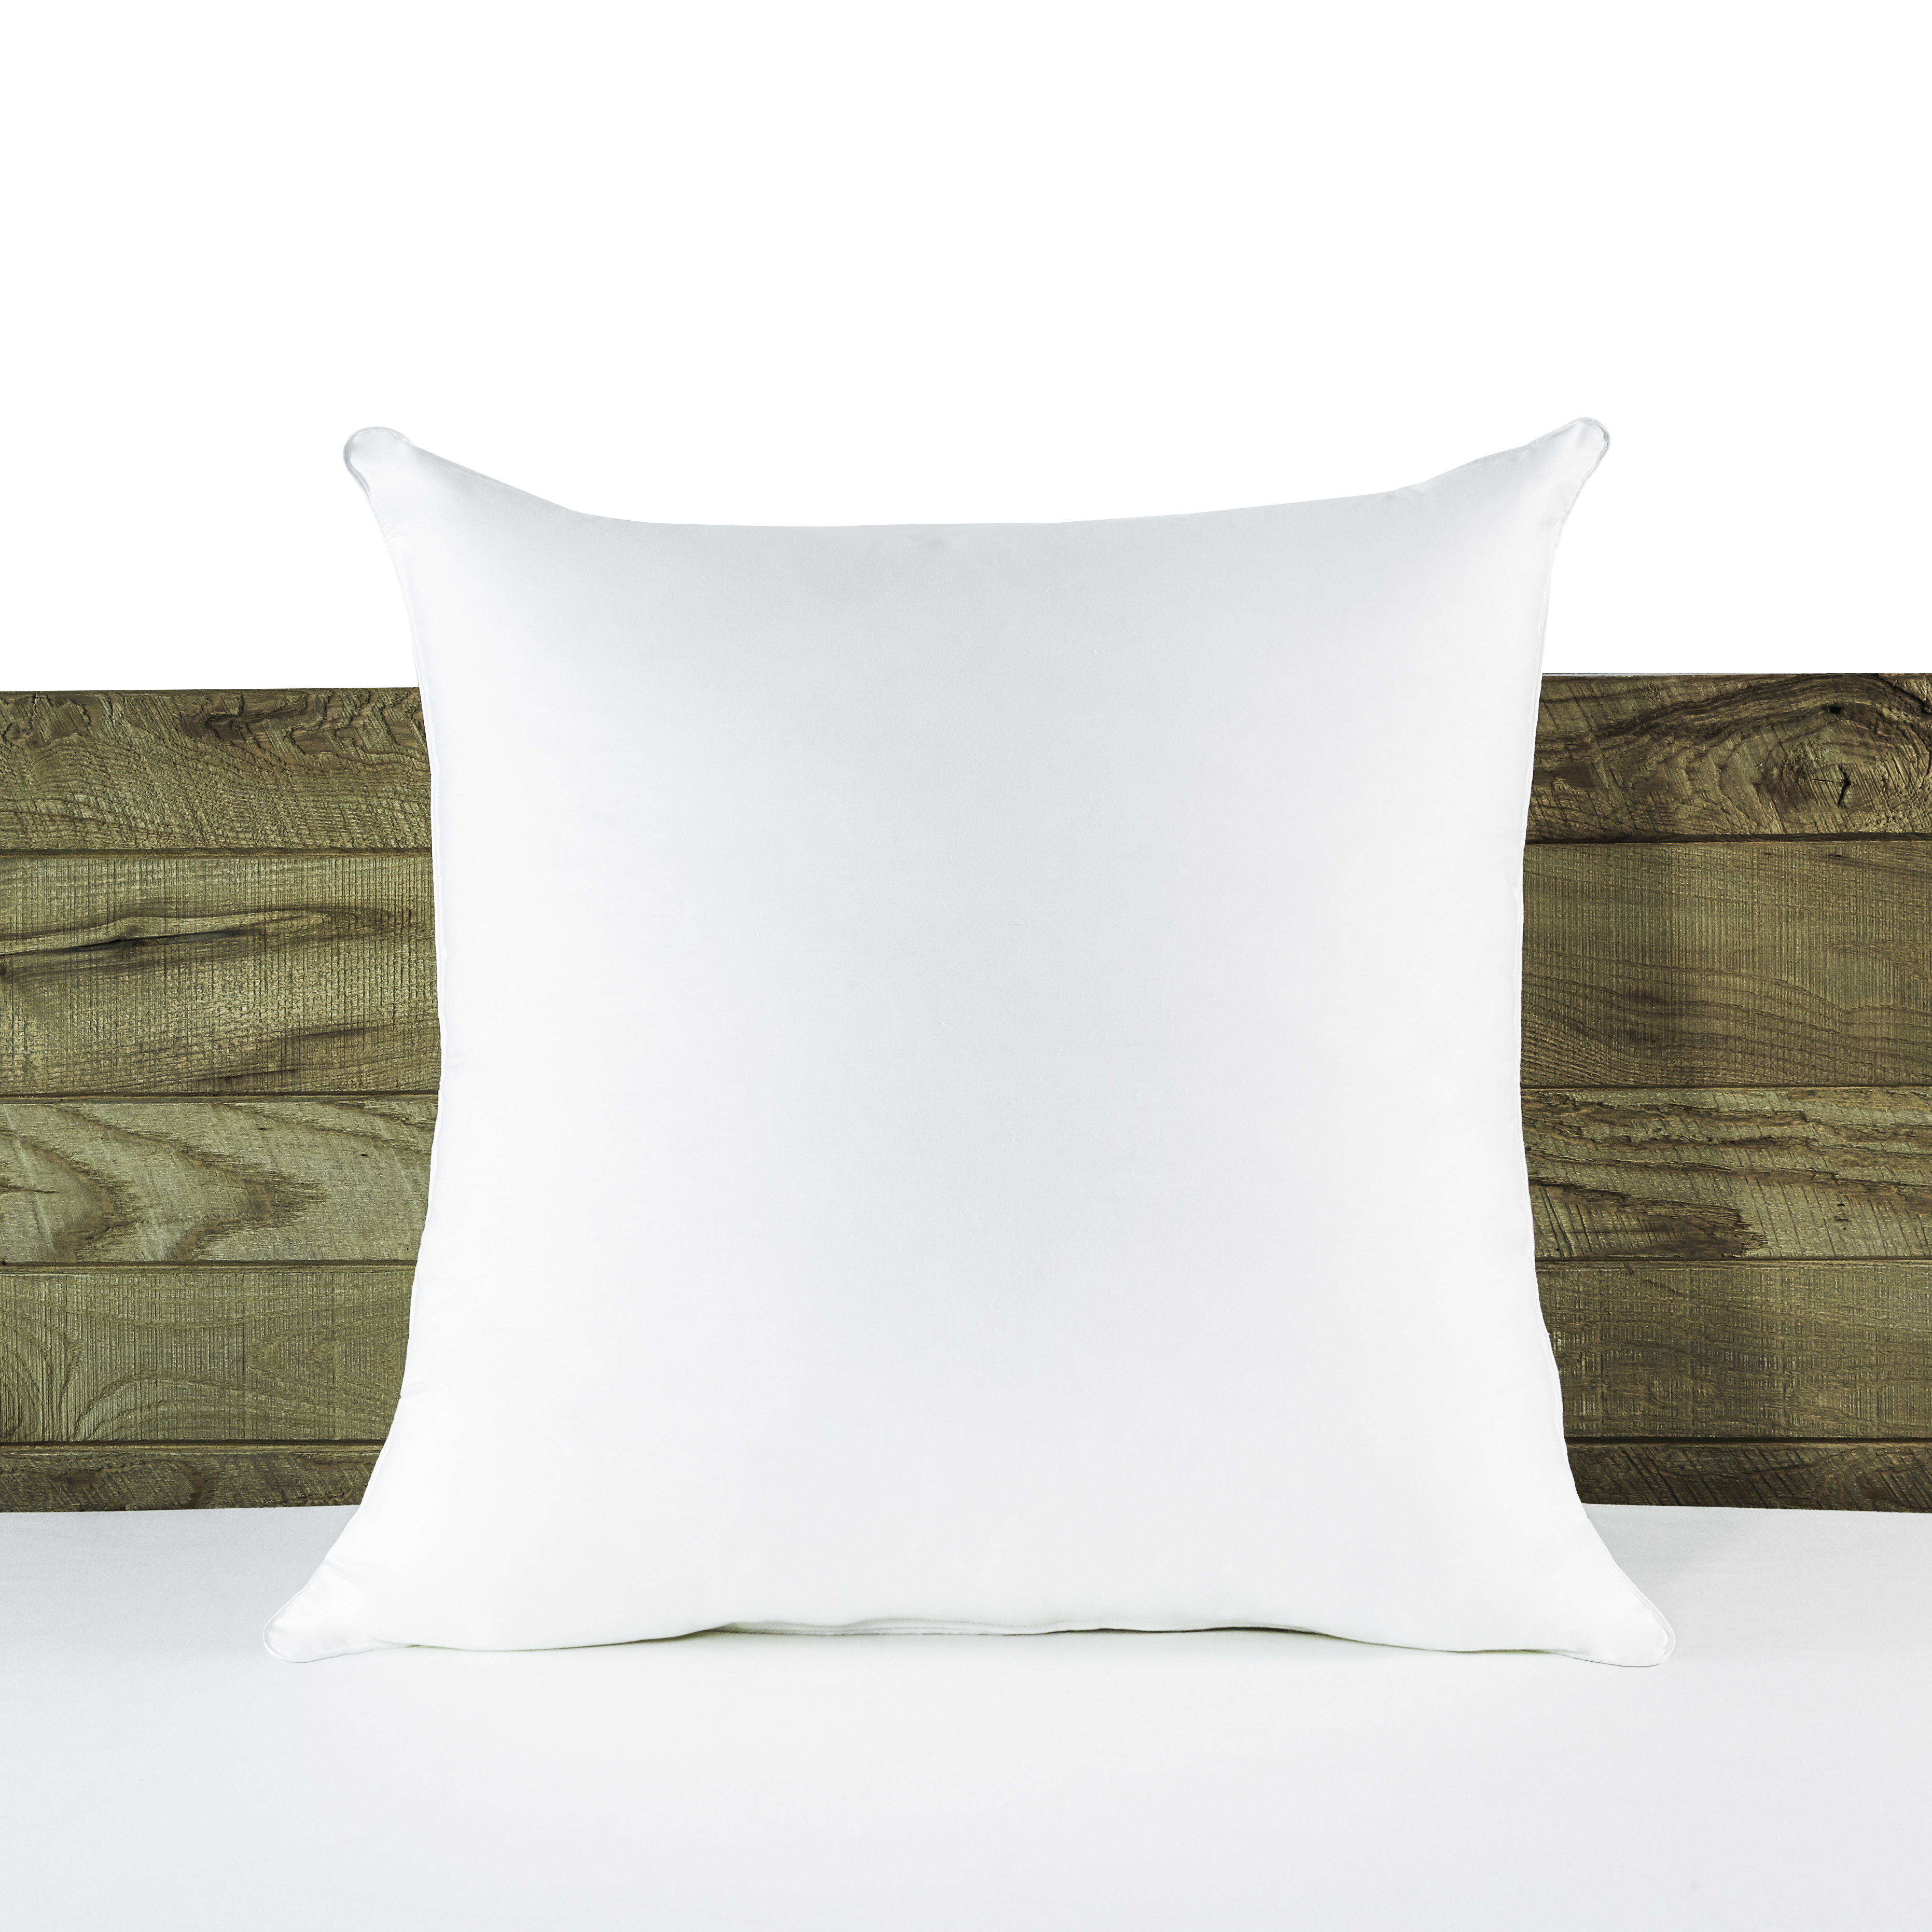 "Beautyrest Cotton-Rich LITE-LOFT Polyester Fill Euro Pillow,26"" x 26"